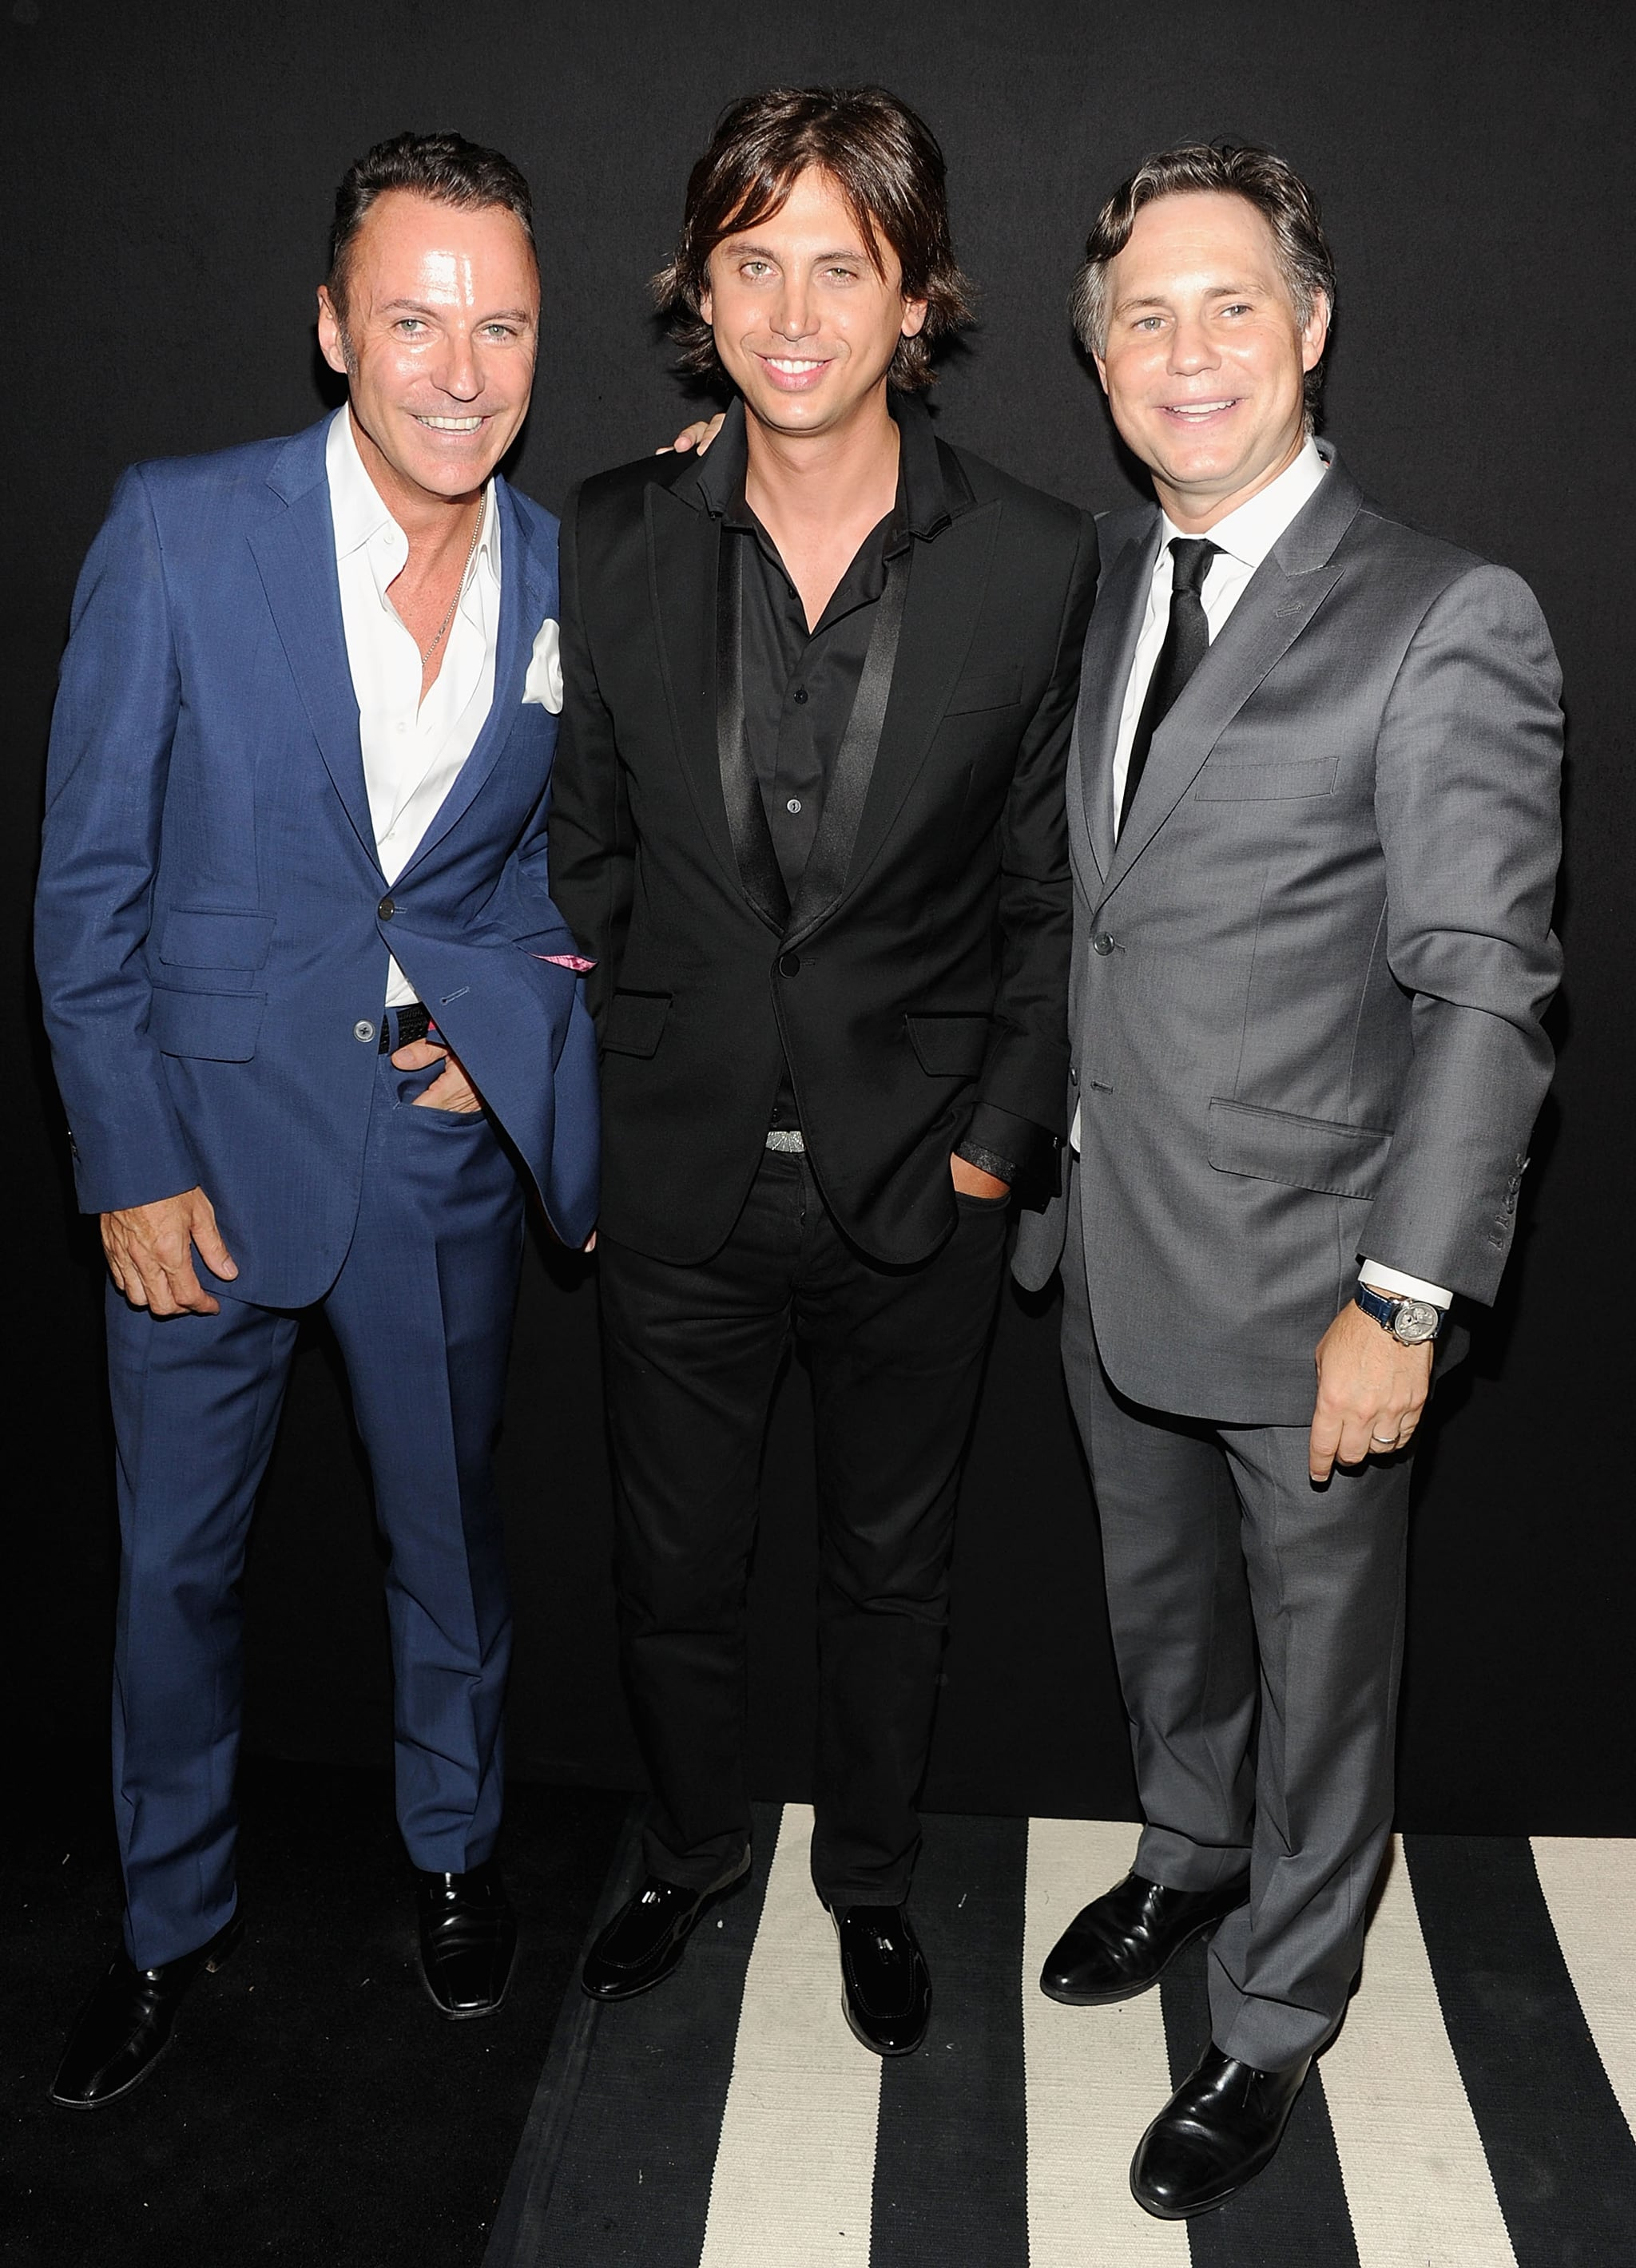 Colin Cowie, Jonathan Cheban and Jason Binn